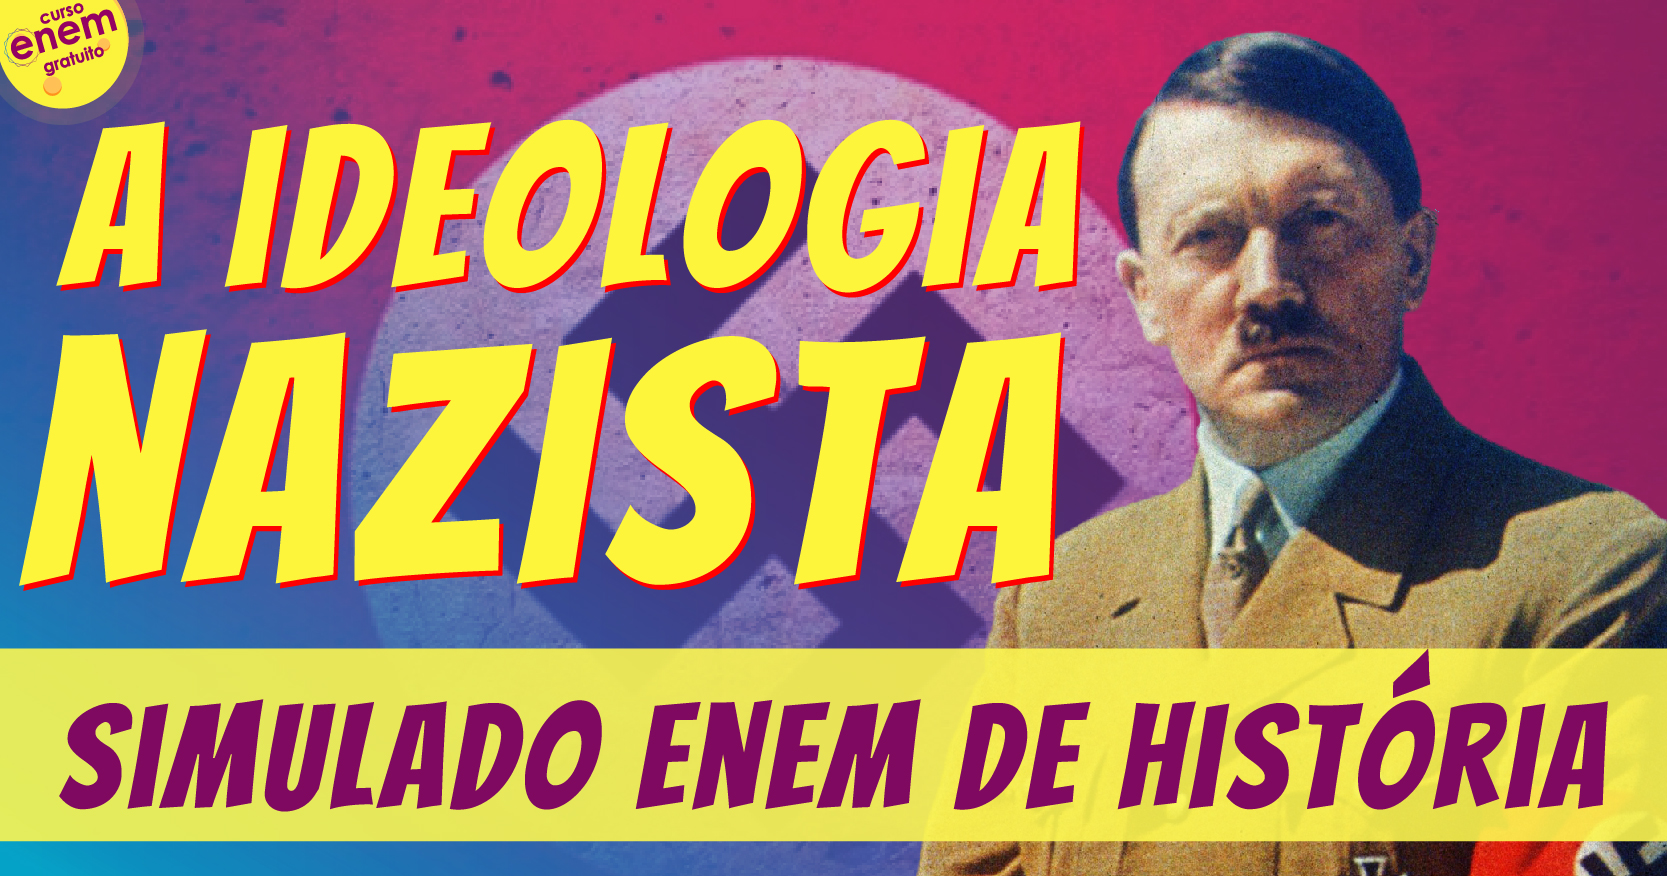 simulado de nazismo blog do enem